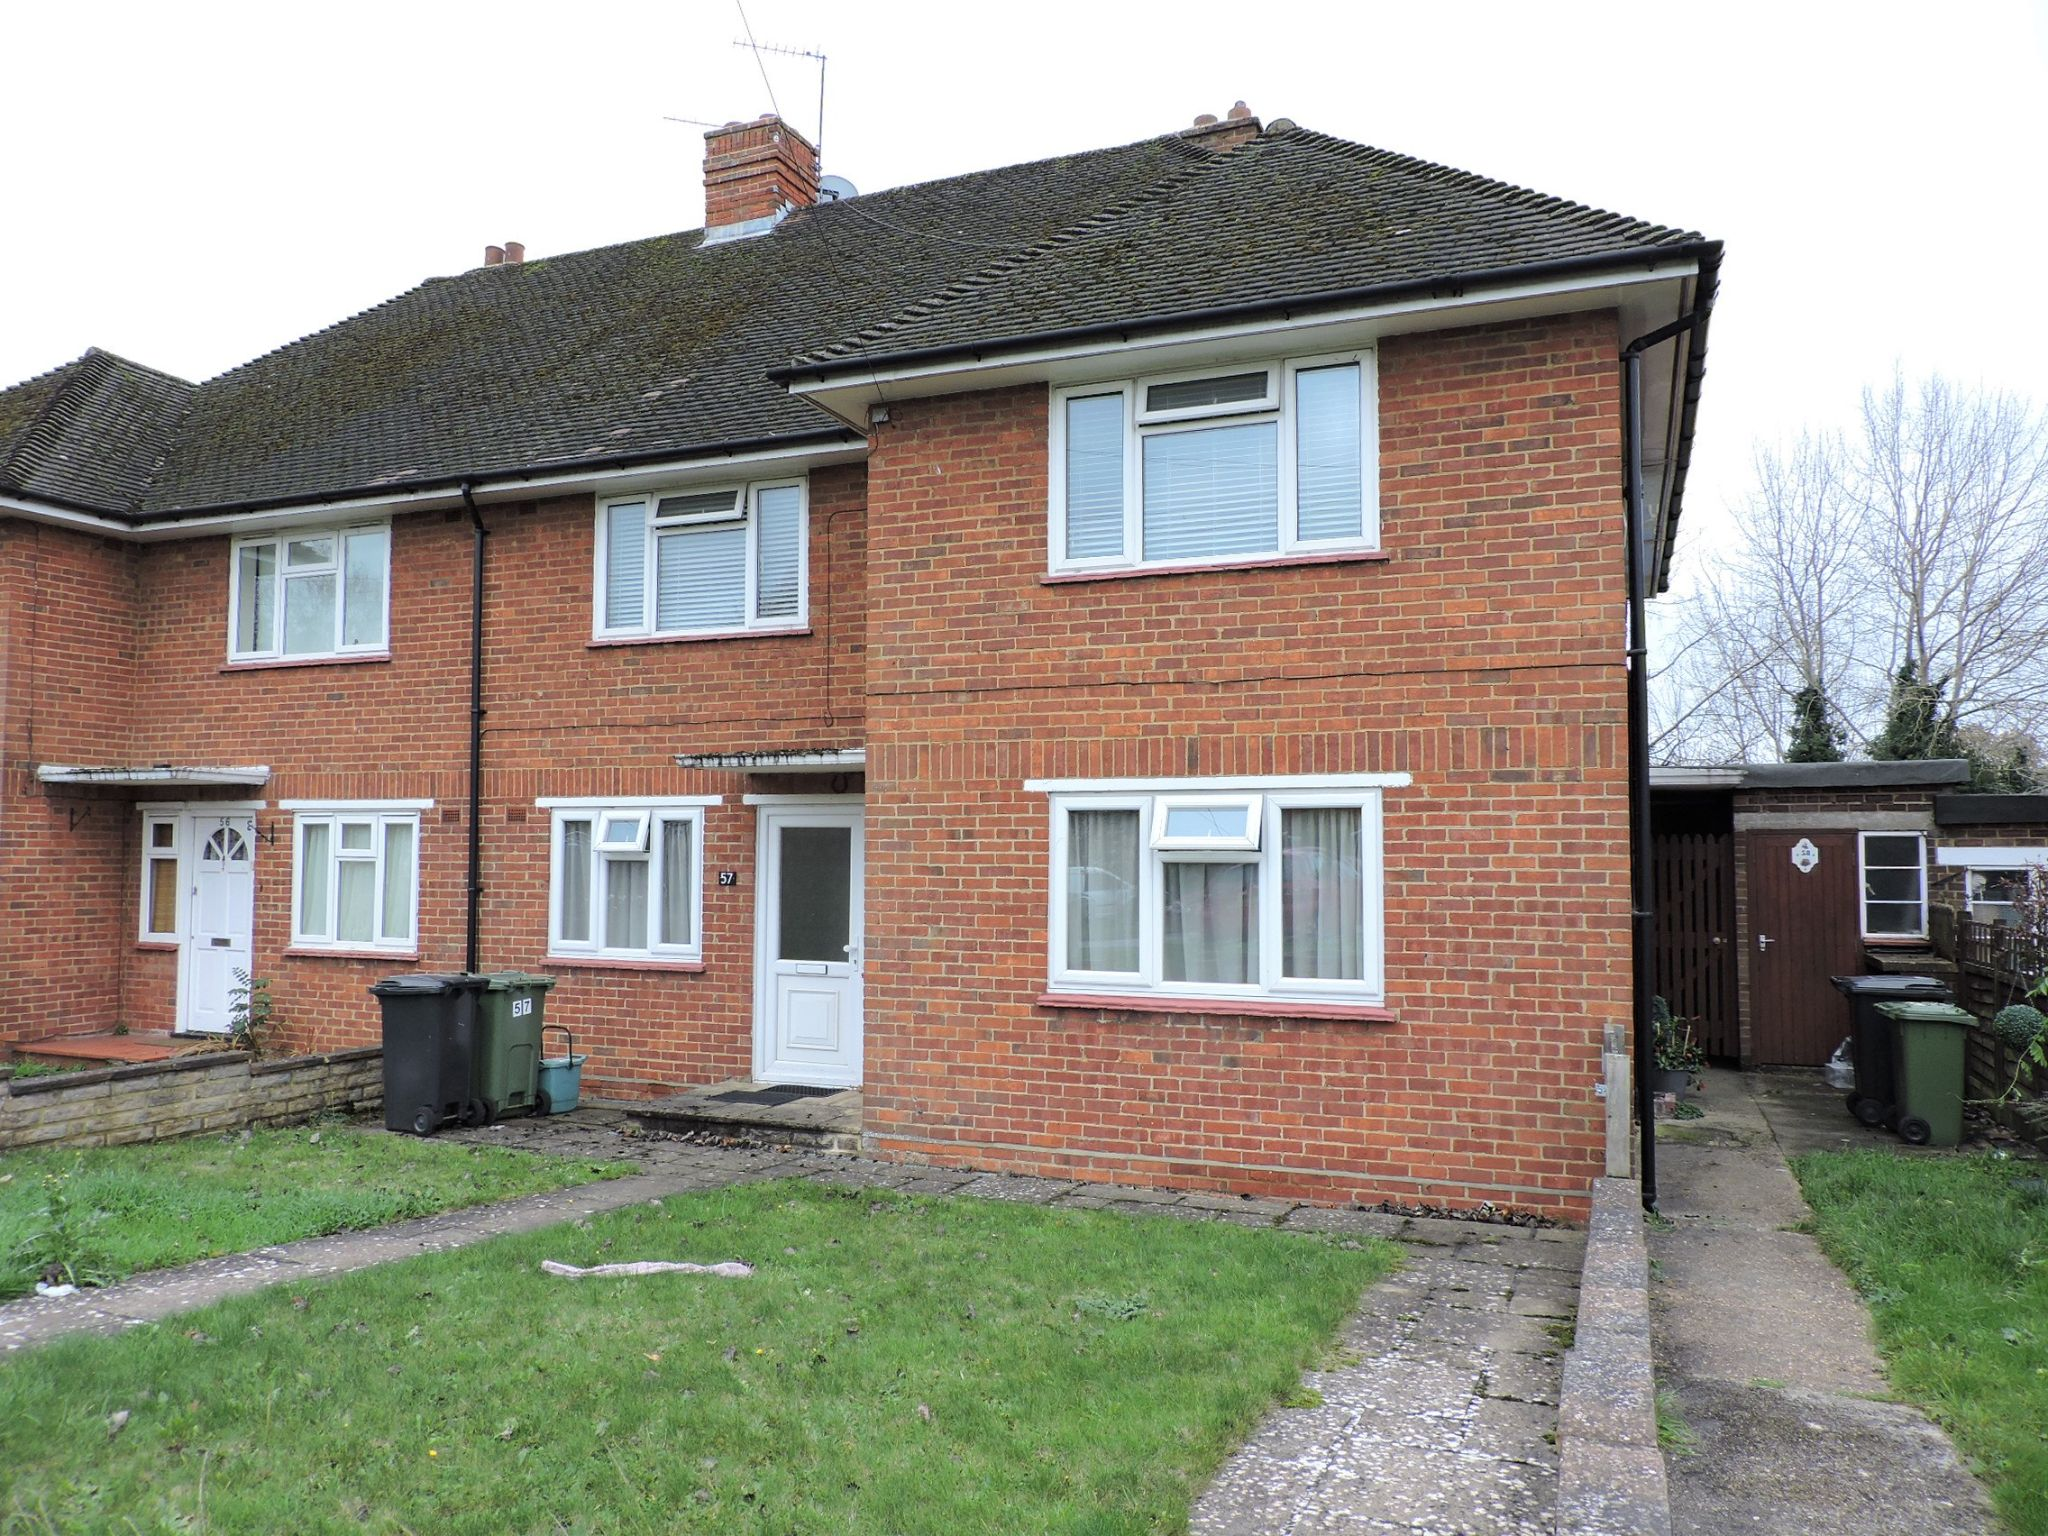 2 bedroom flat flat/apartment Sale Agreed in Epsom - Photograph 1